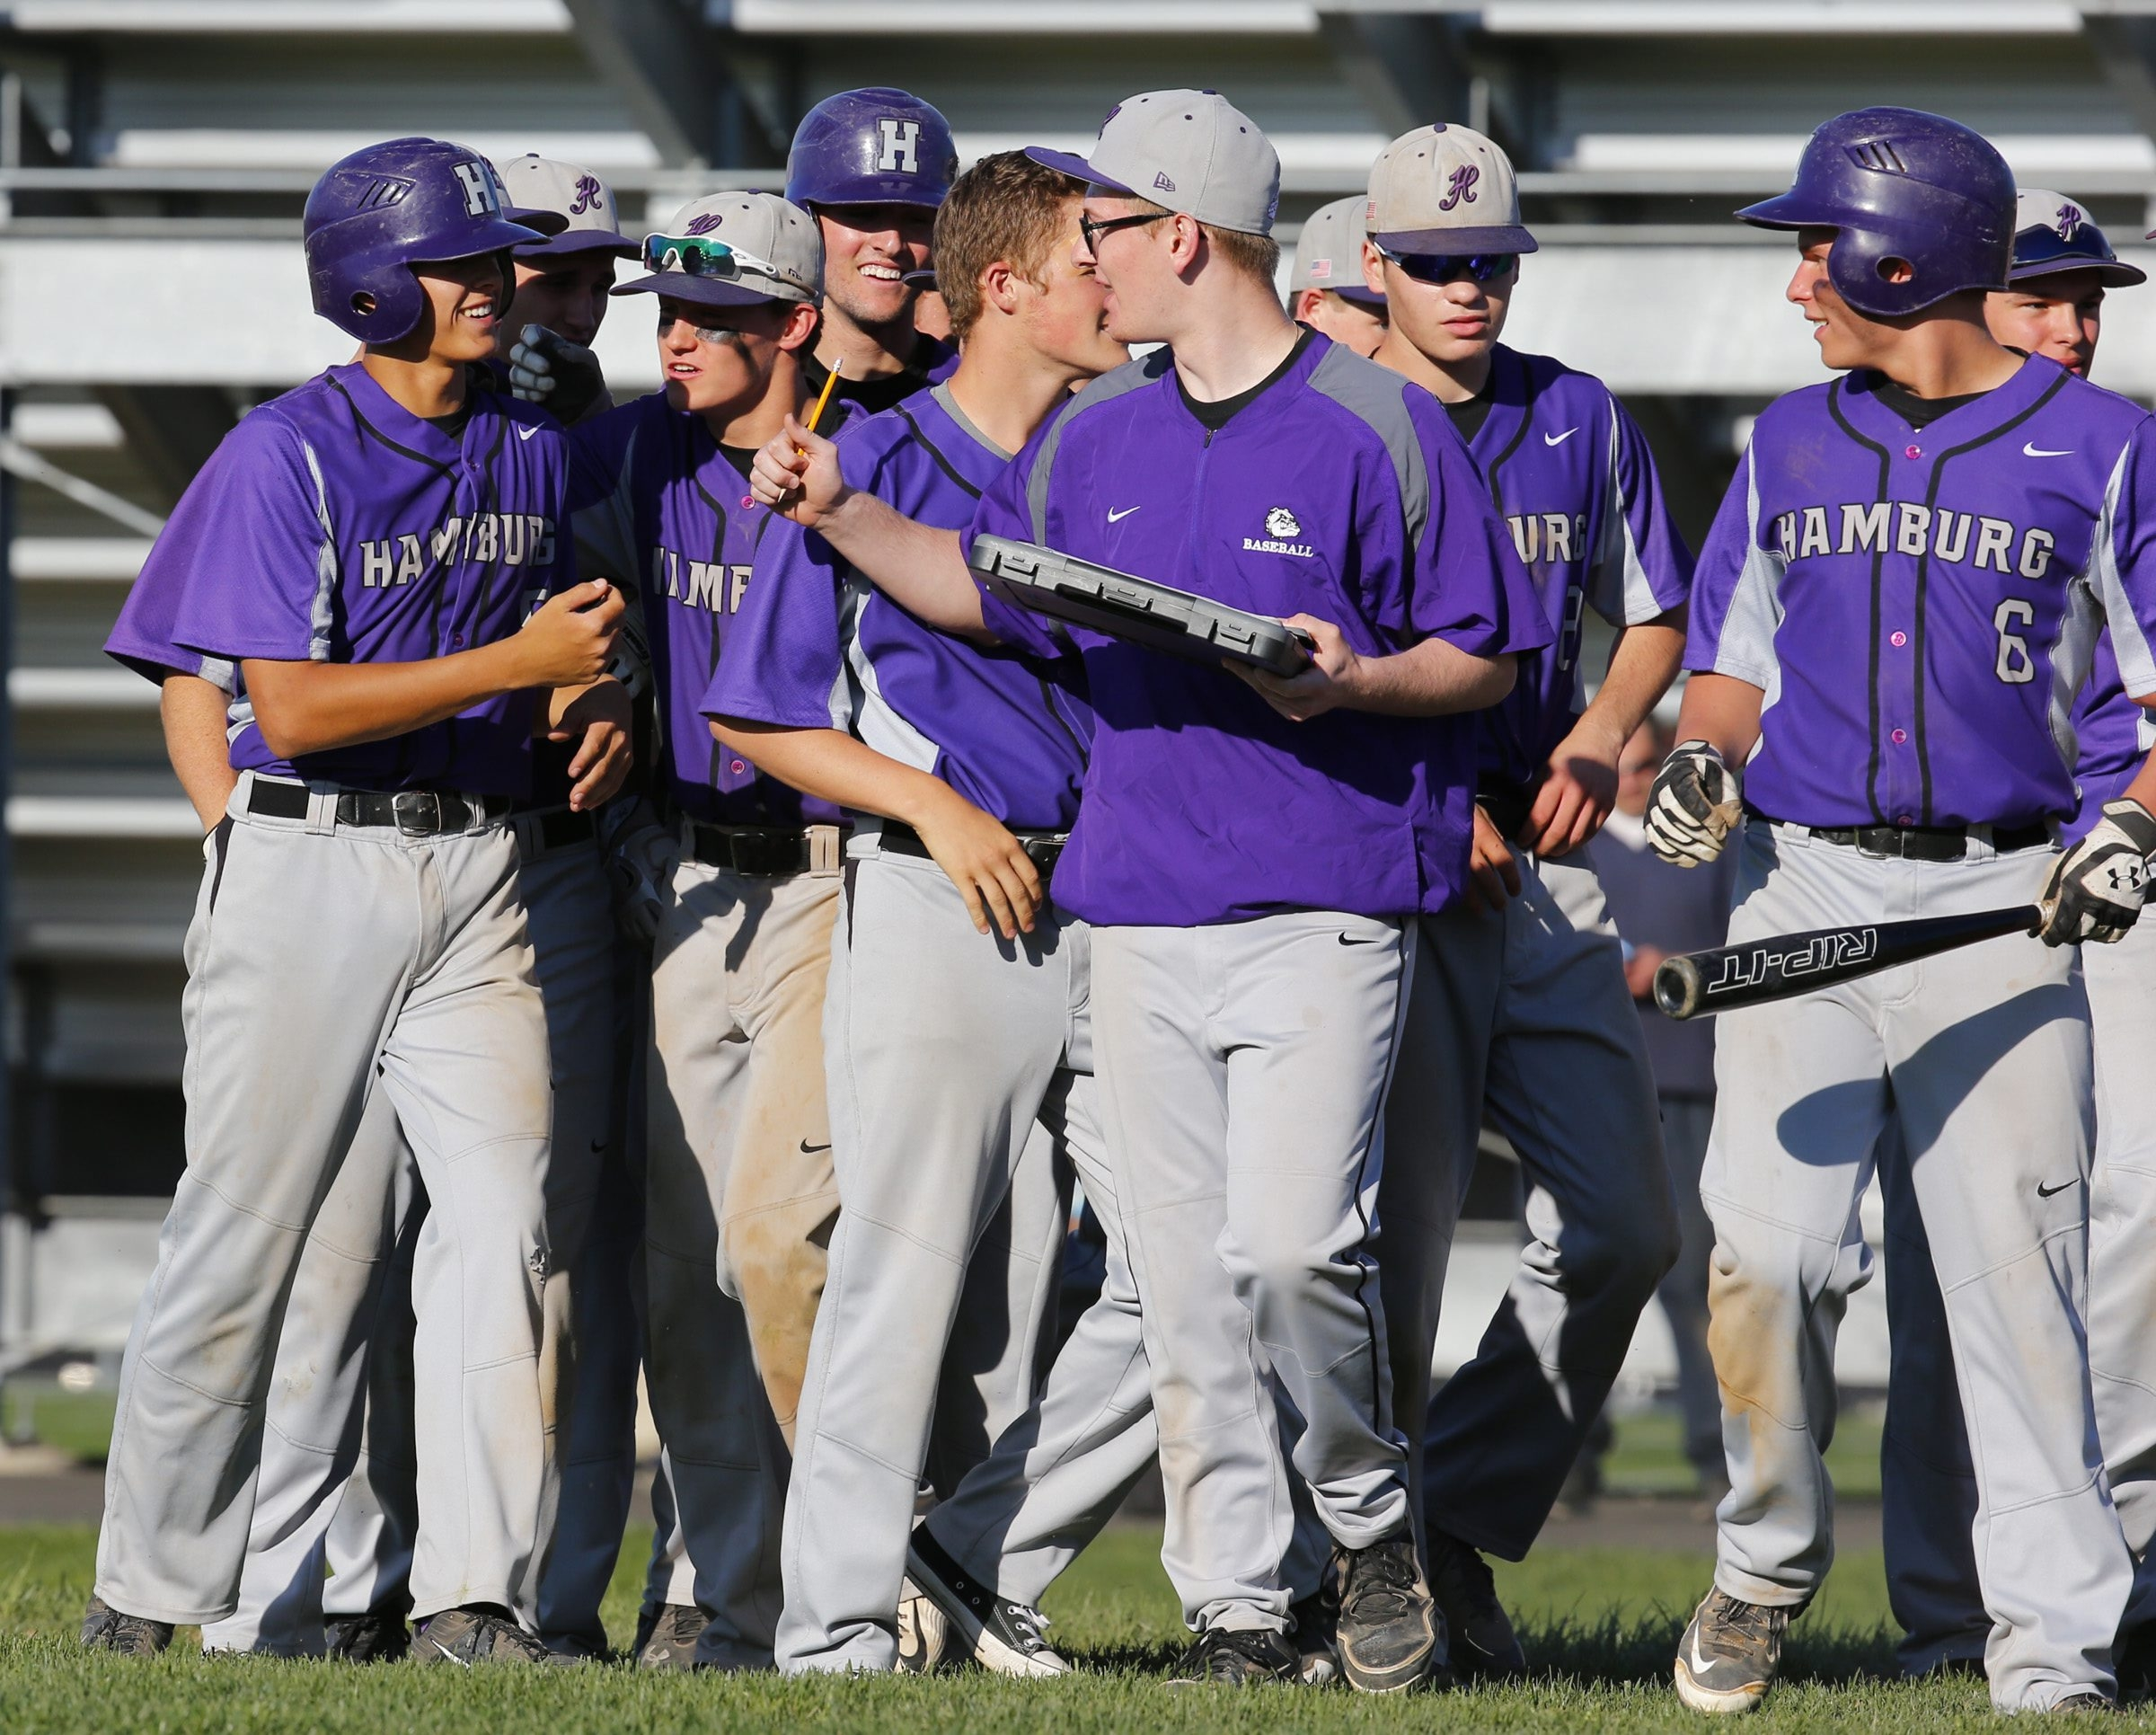 Hamburg's Ryan Dils is congratulated after hitting the game-winning RBI single in the seventh inning against Starpoint at Hamburg High School on Thursday.